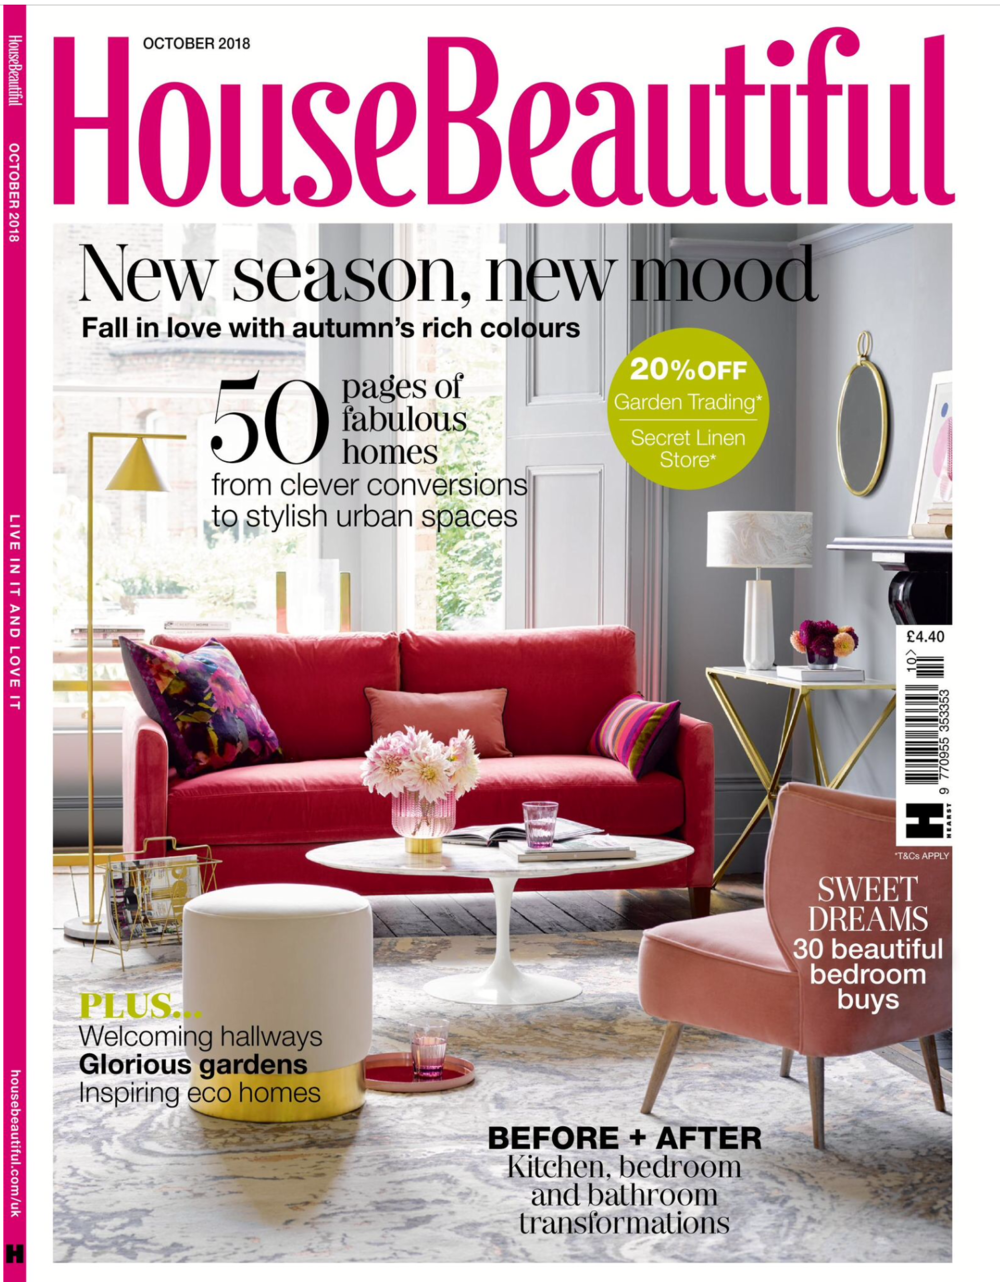 House Beautiful - October 2018